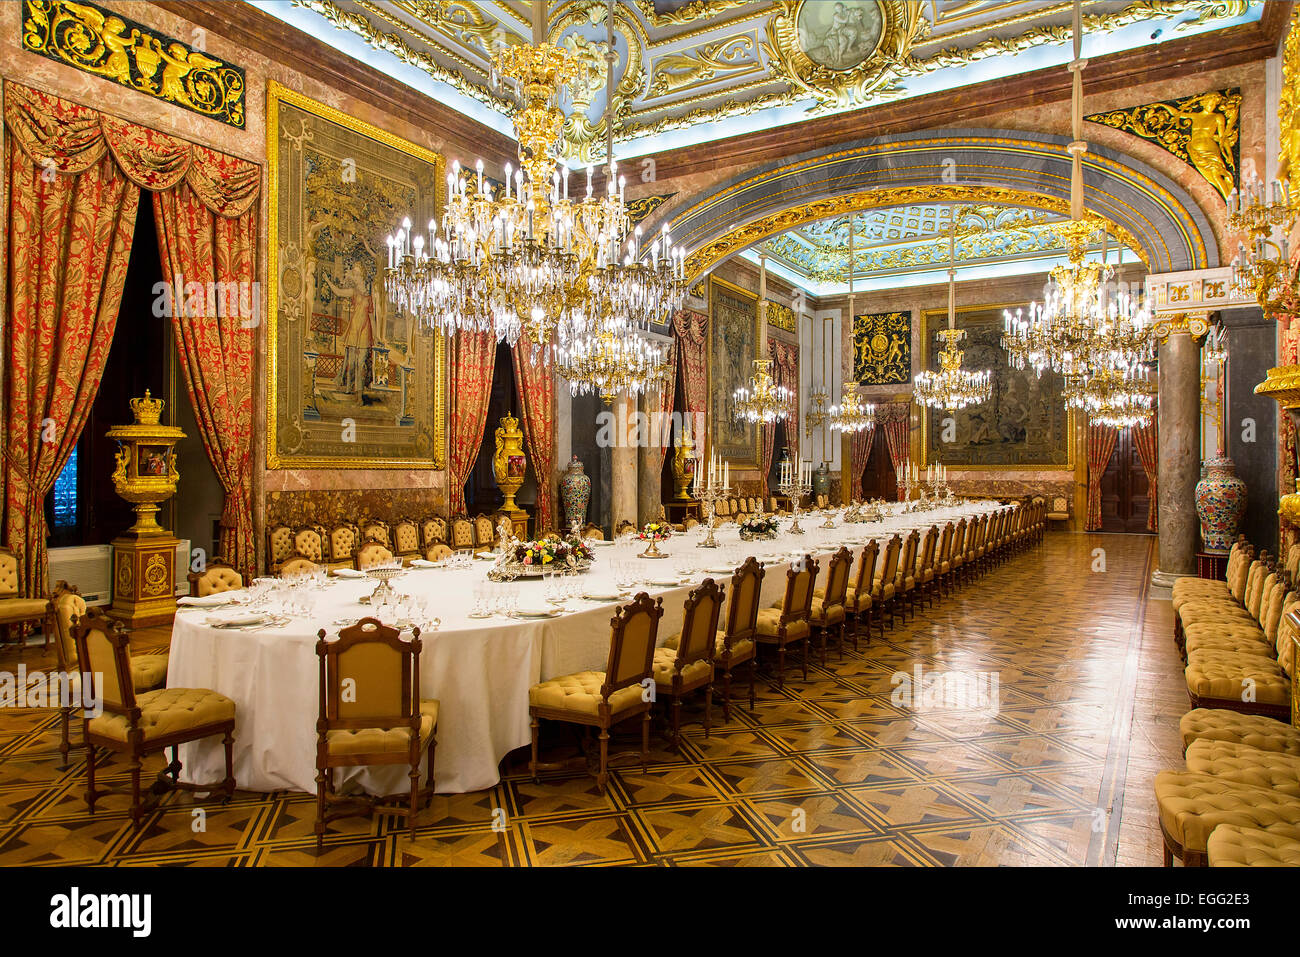 Madrid, Dining Room in Royal Palace - Stock Image